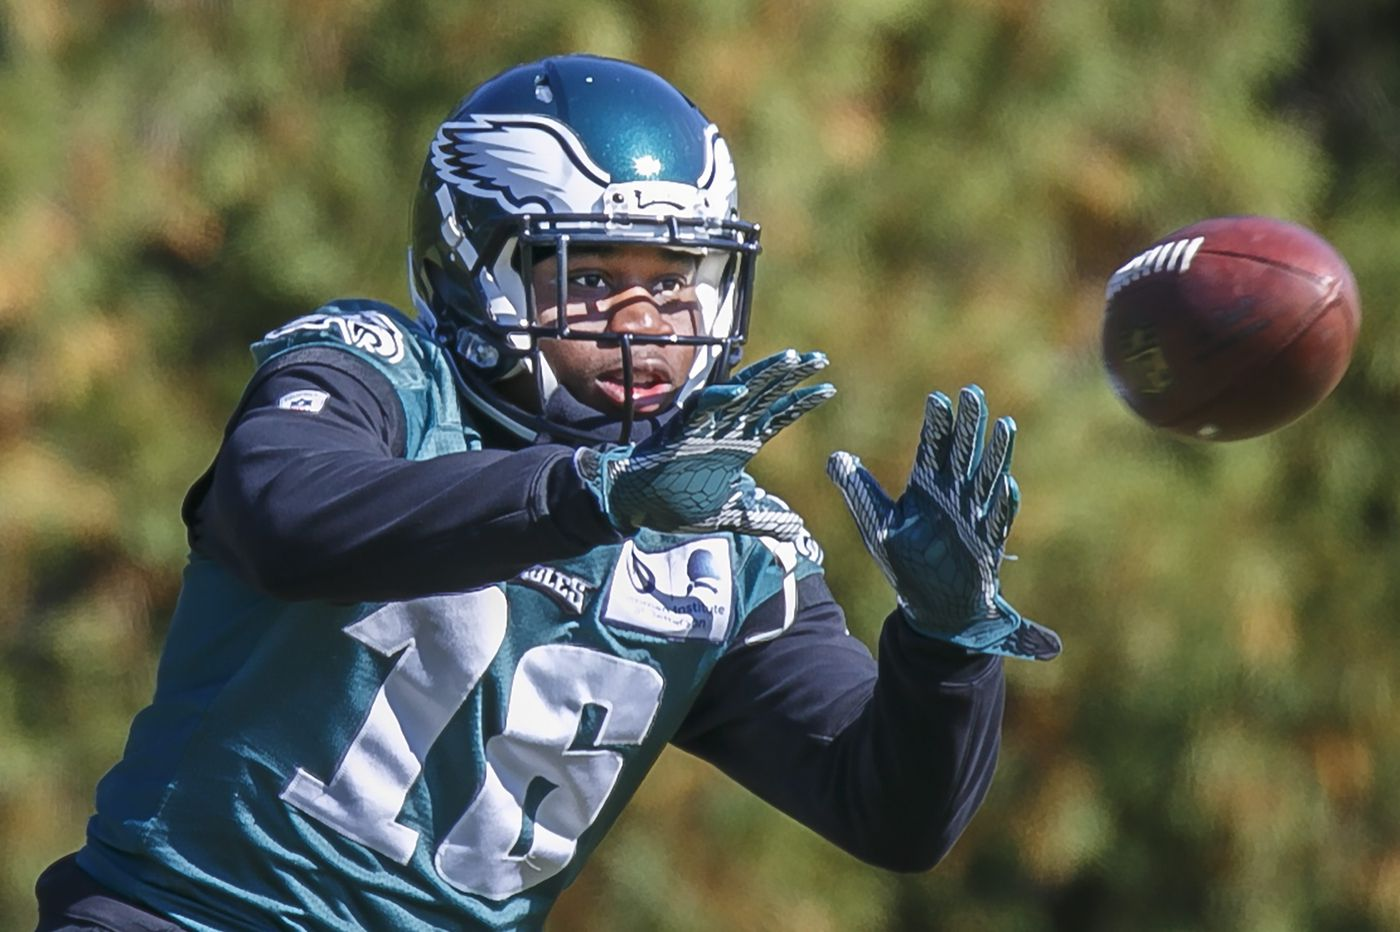 Eagles waive wide receiver/kick returner DeAndre Carter